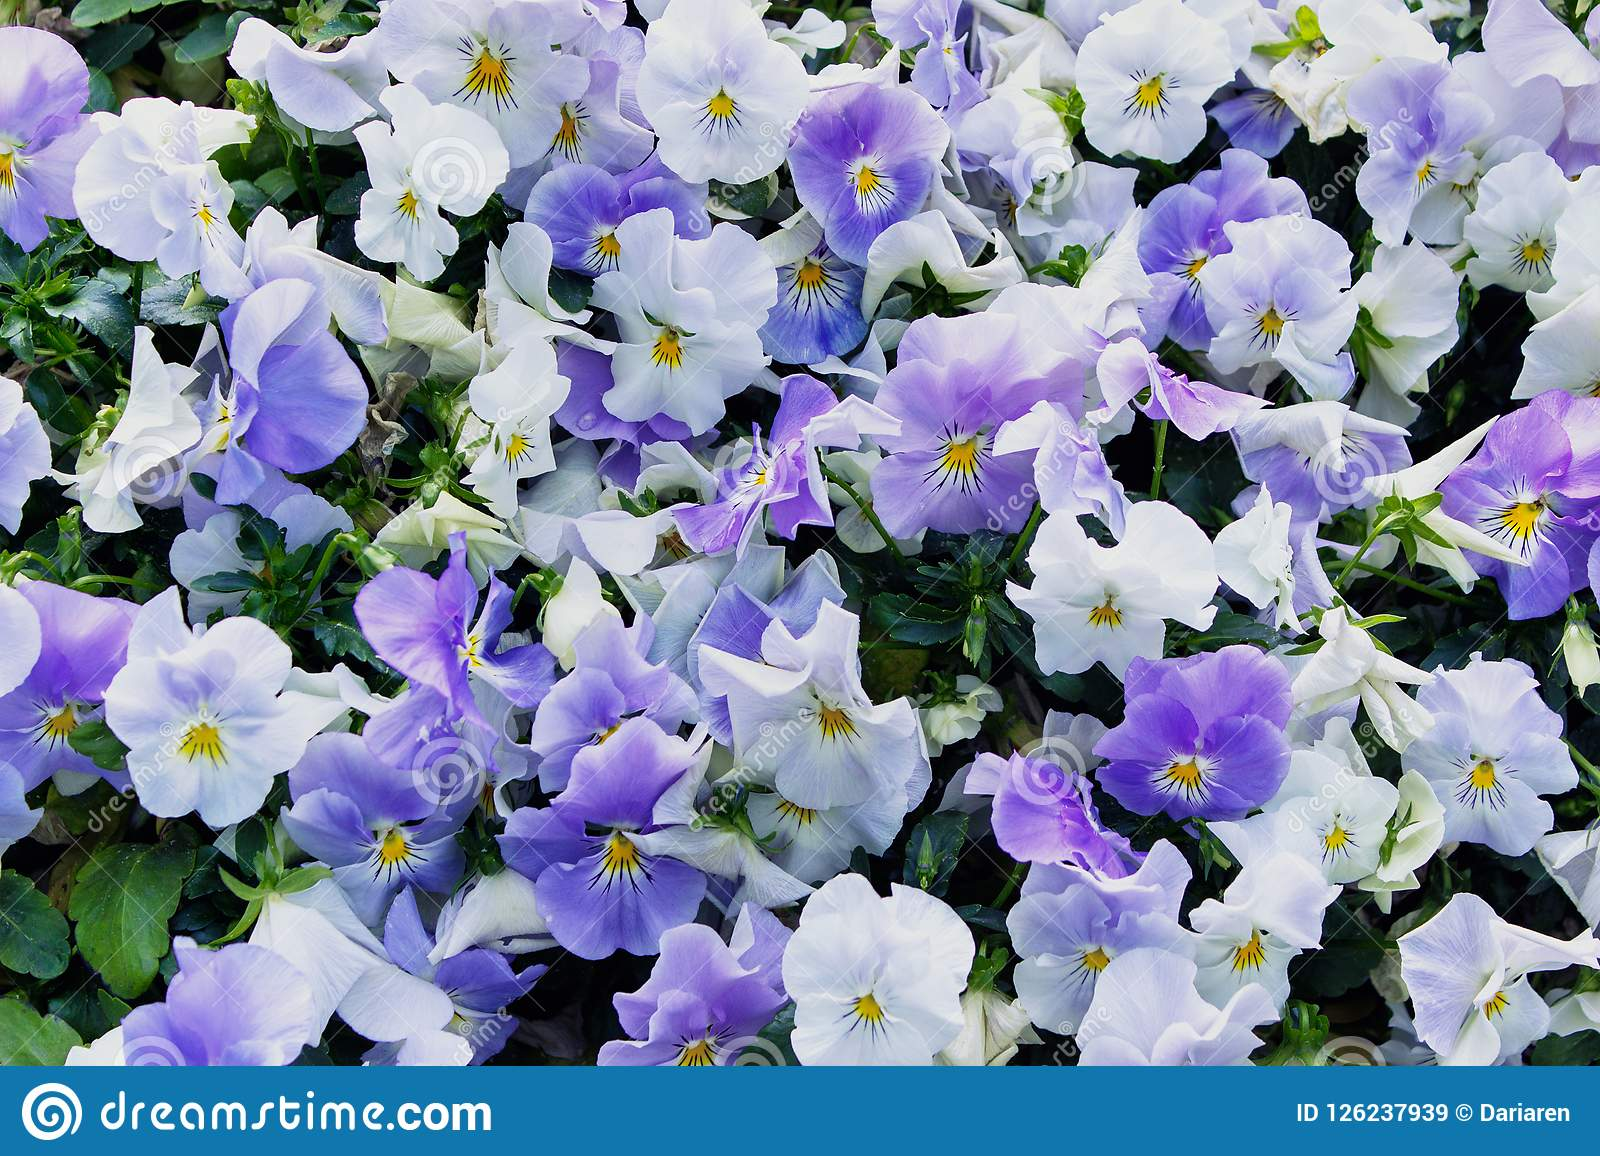 Background with Viola tricolor blooming flowers.